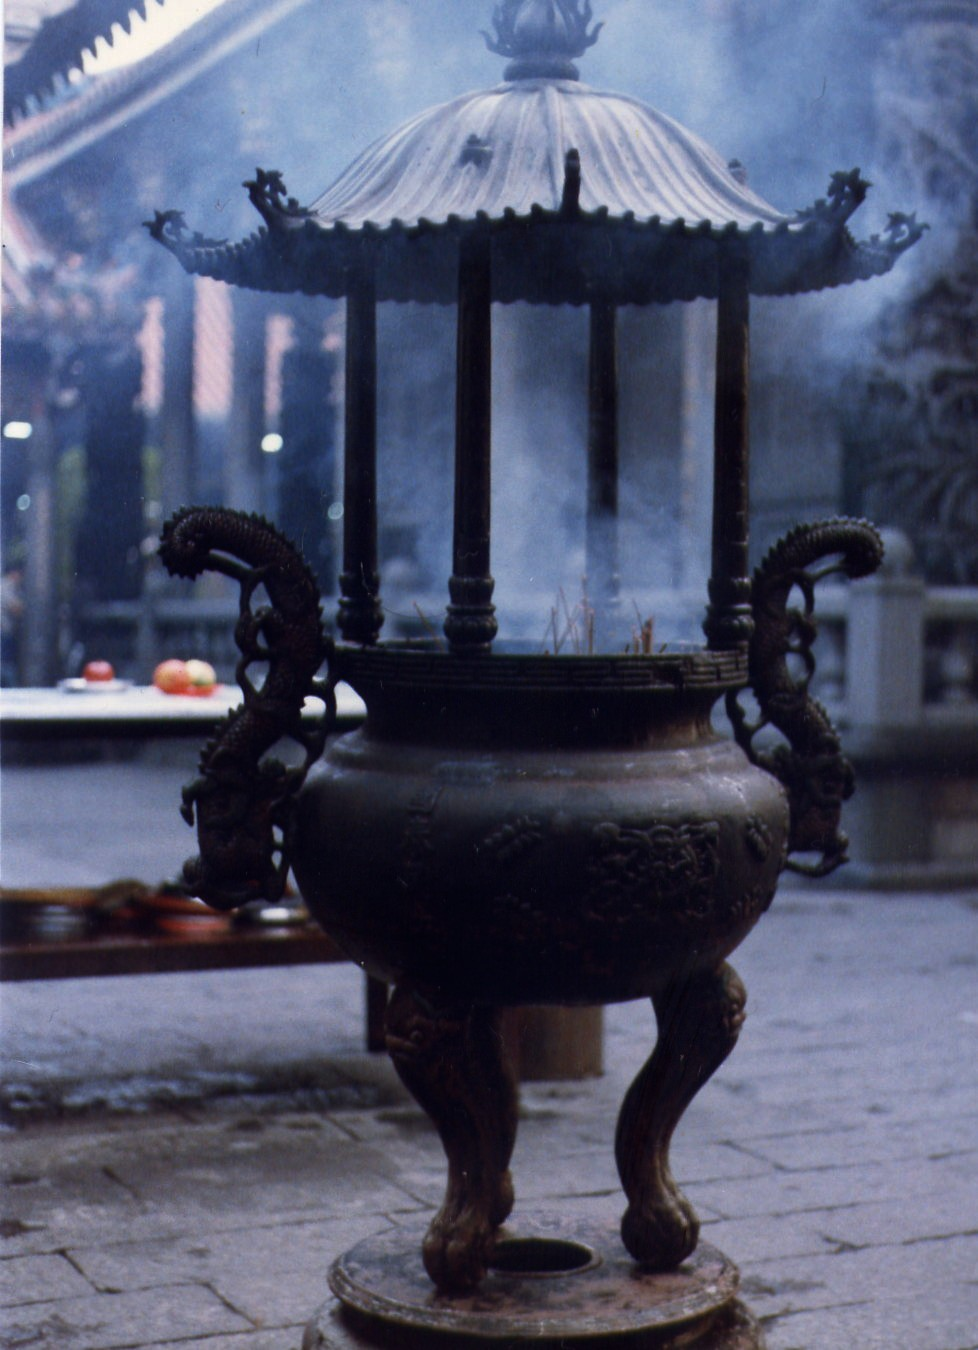 https://upload.wikimedia.org/wikipedia/commons/1/1b/Chinese_temple_incence_burner.jpg